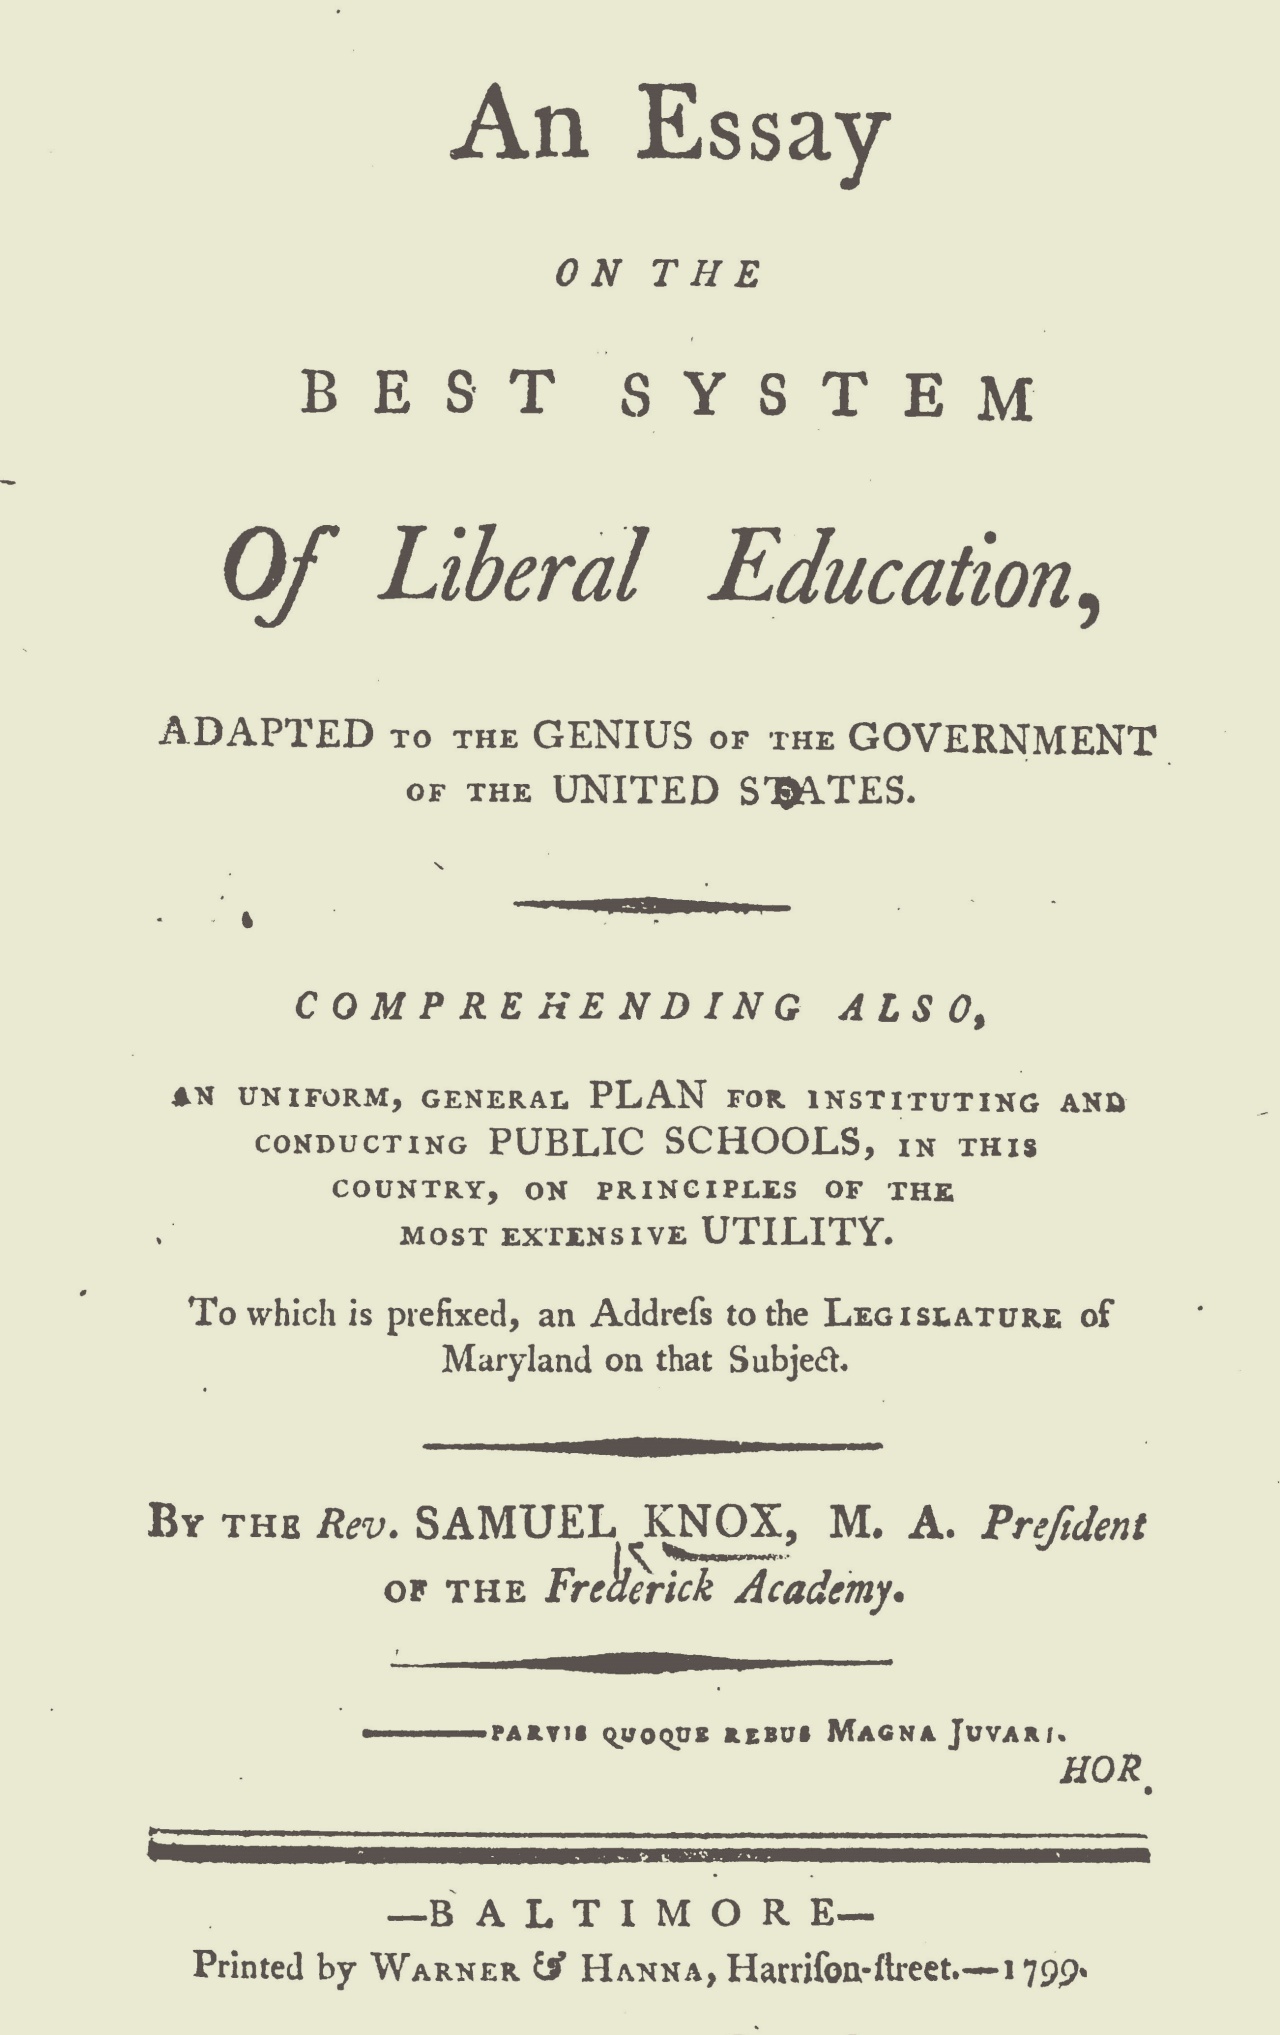 Knox, Samuel, An Essay on the Best System of Education Title Page.jpg